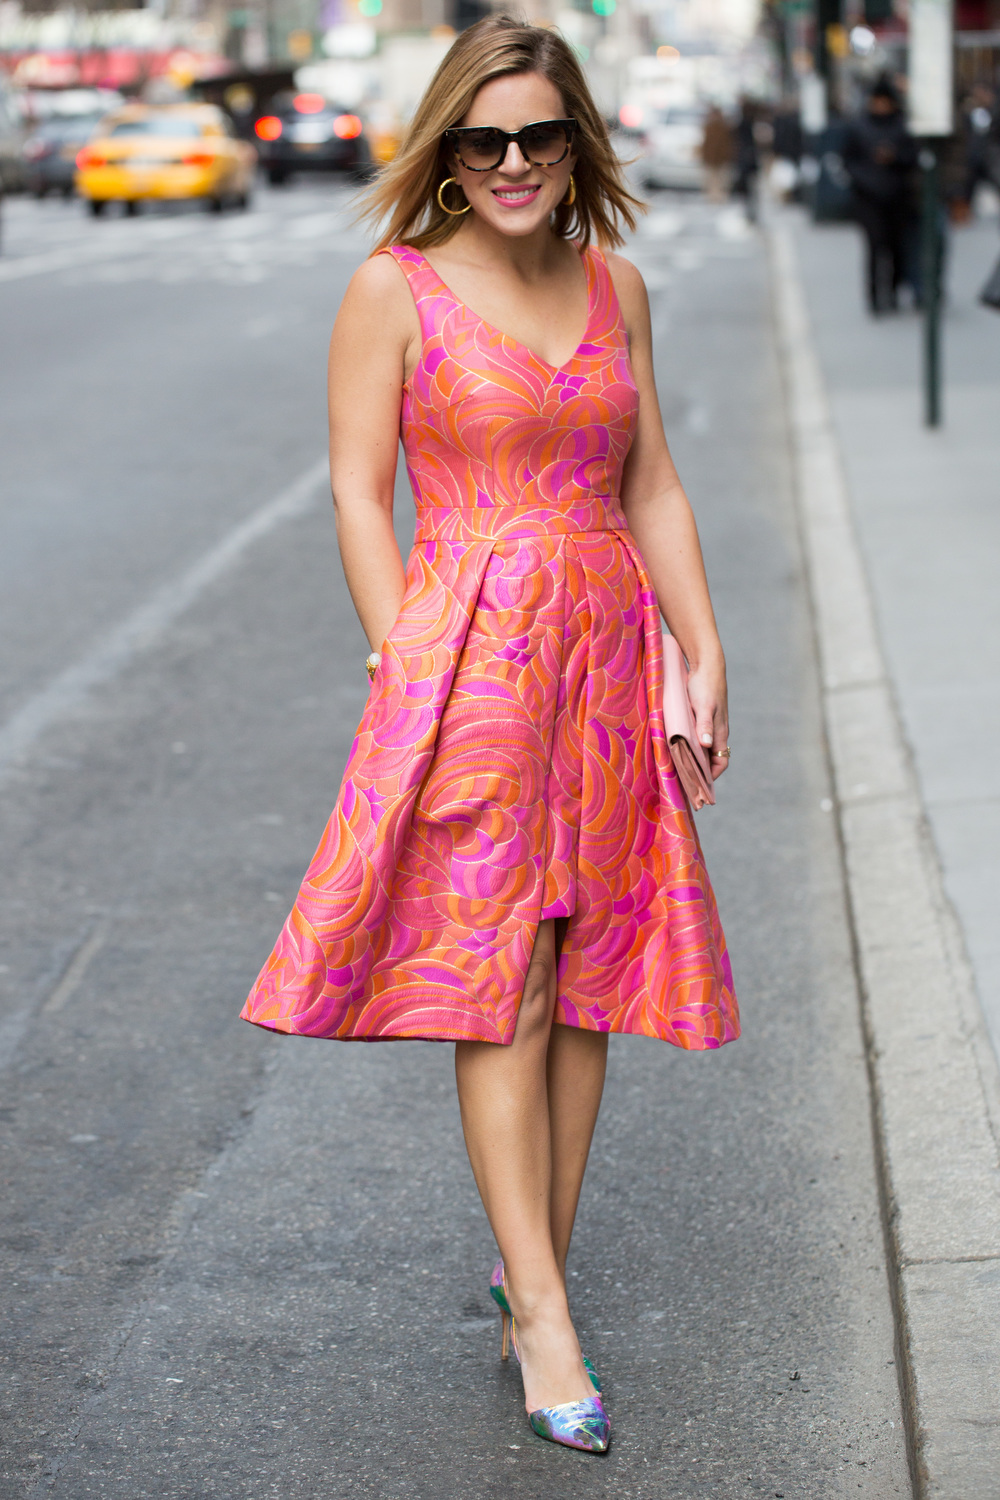 Trina Turk pink and orange dress 1.jpg